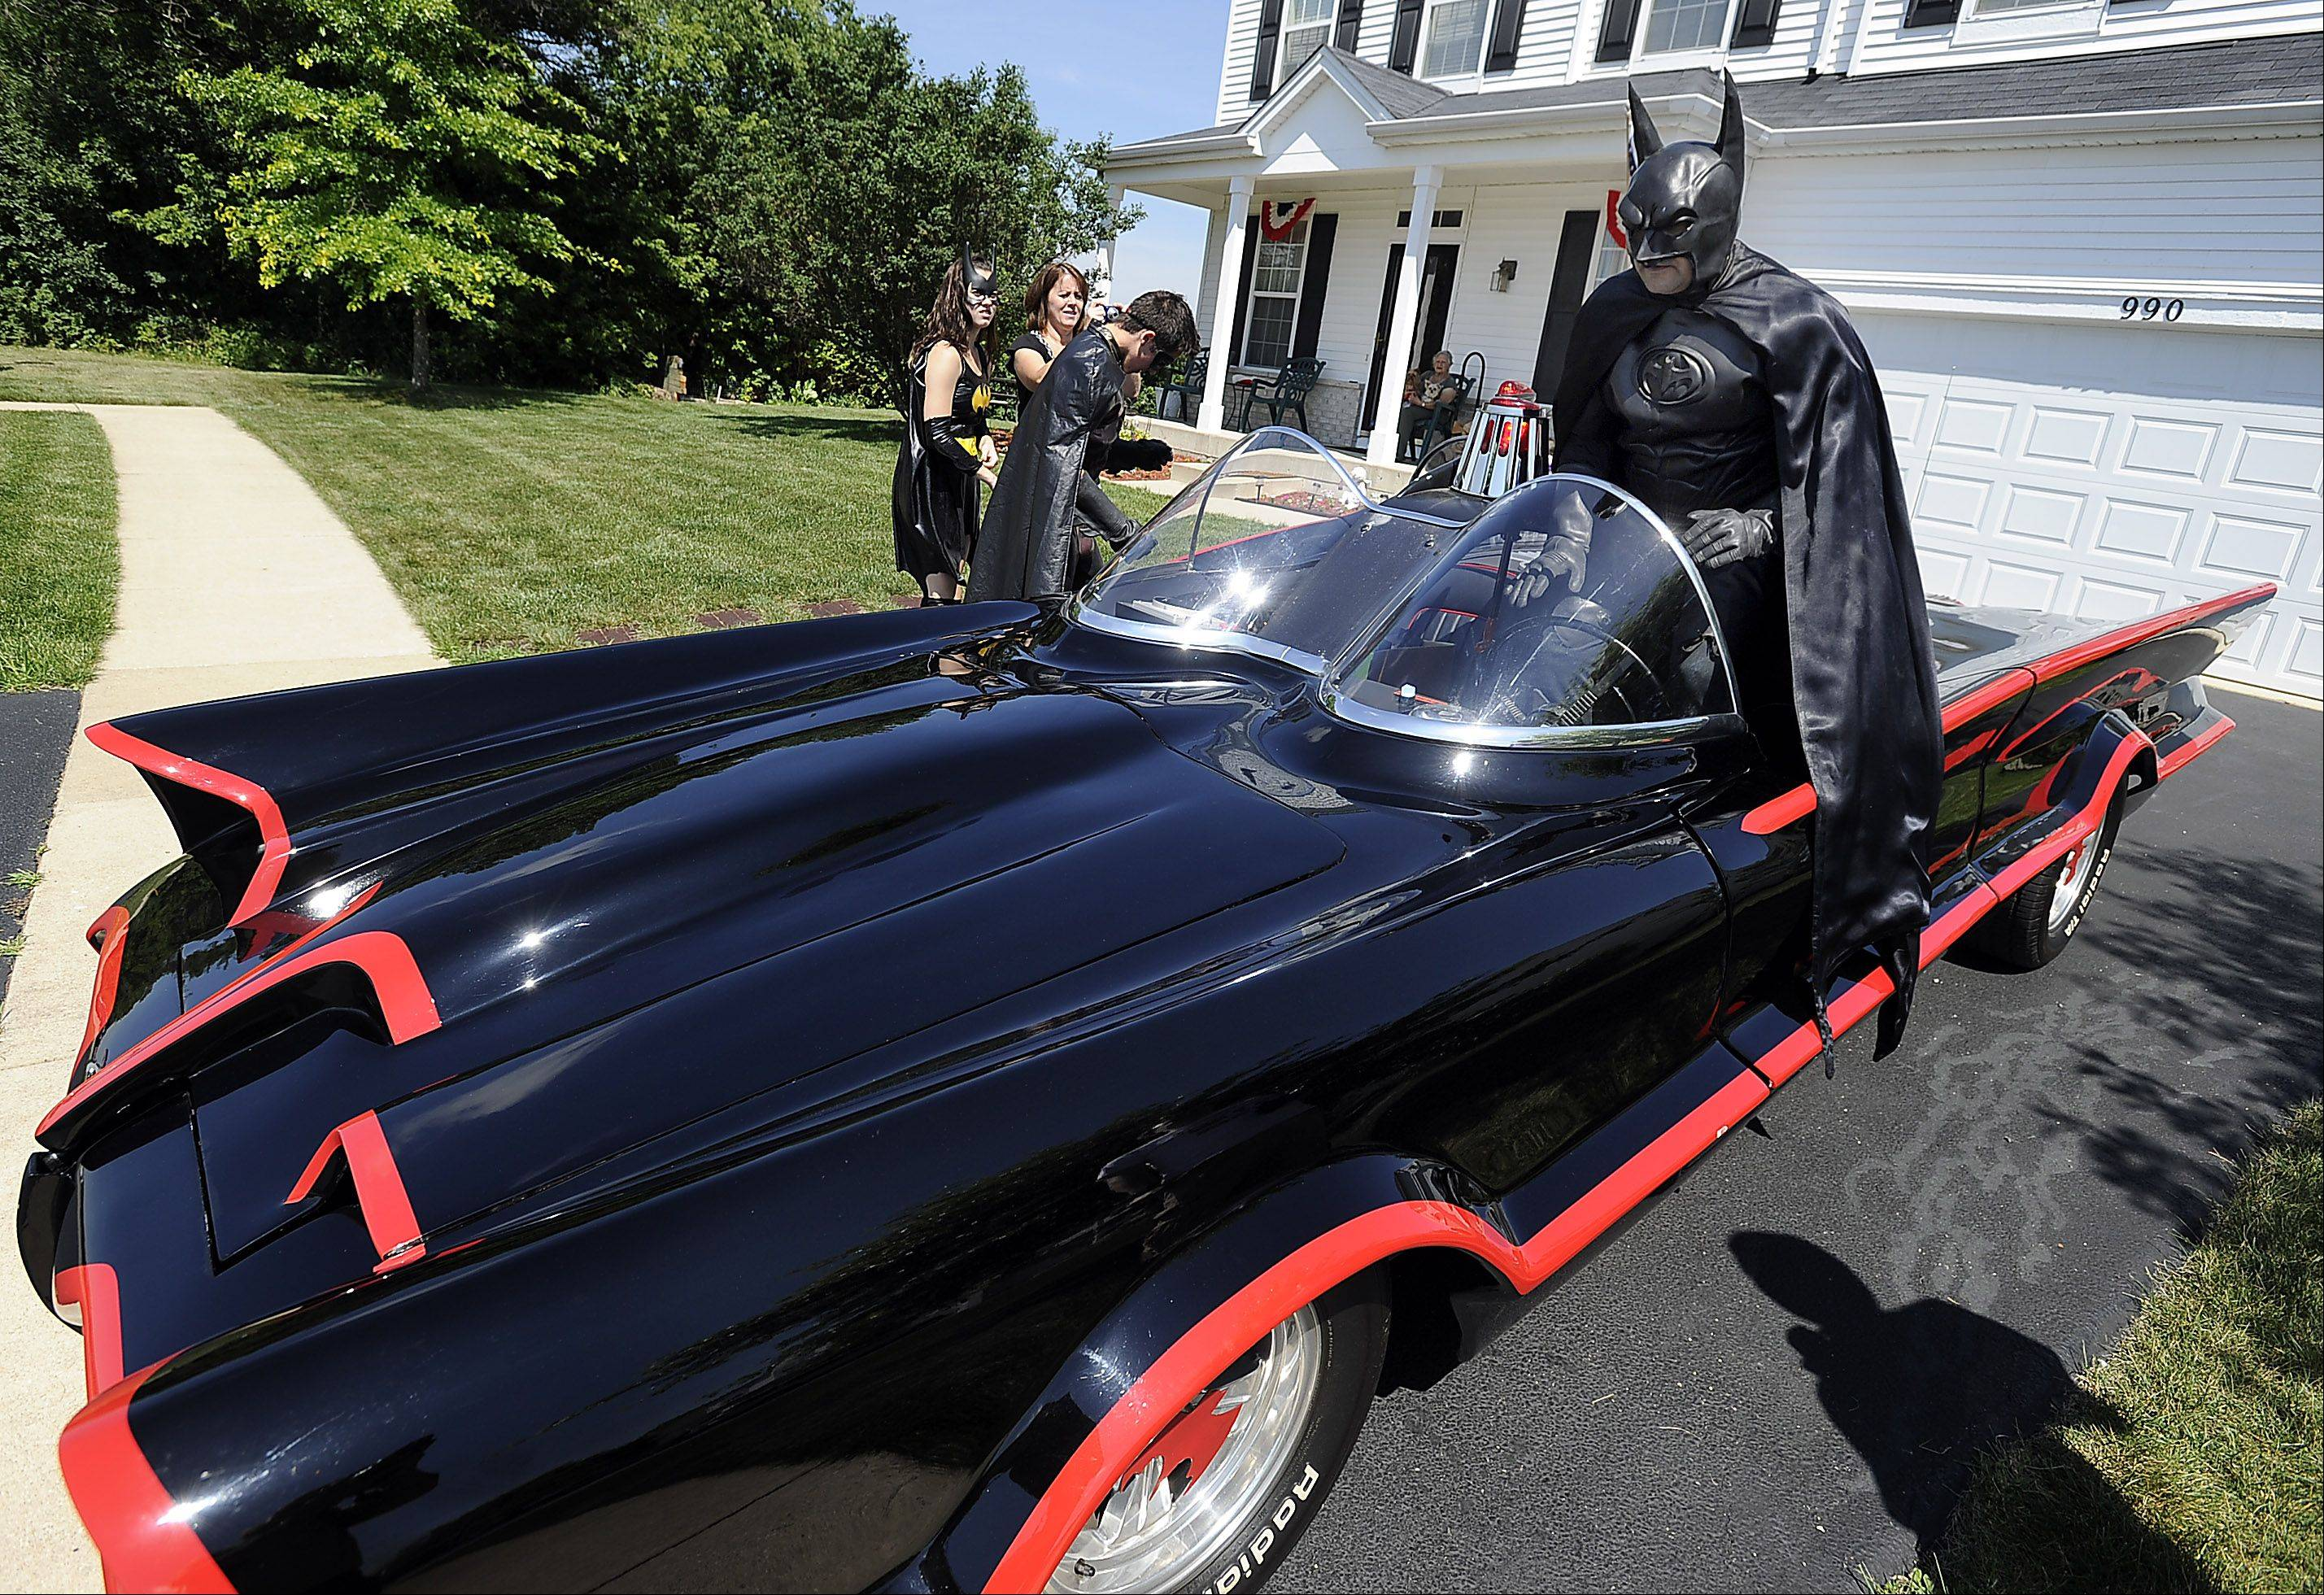 Round Lake Heights Trustee Dominick Mahoney climbs into the Batmobile he just pulled out of the bat cave for the Round Lake Heights Festival Parade on Saturday, July 13.